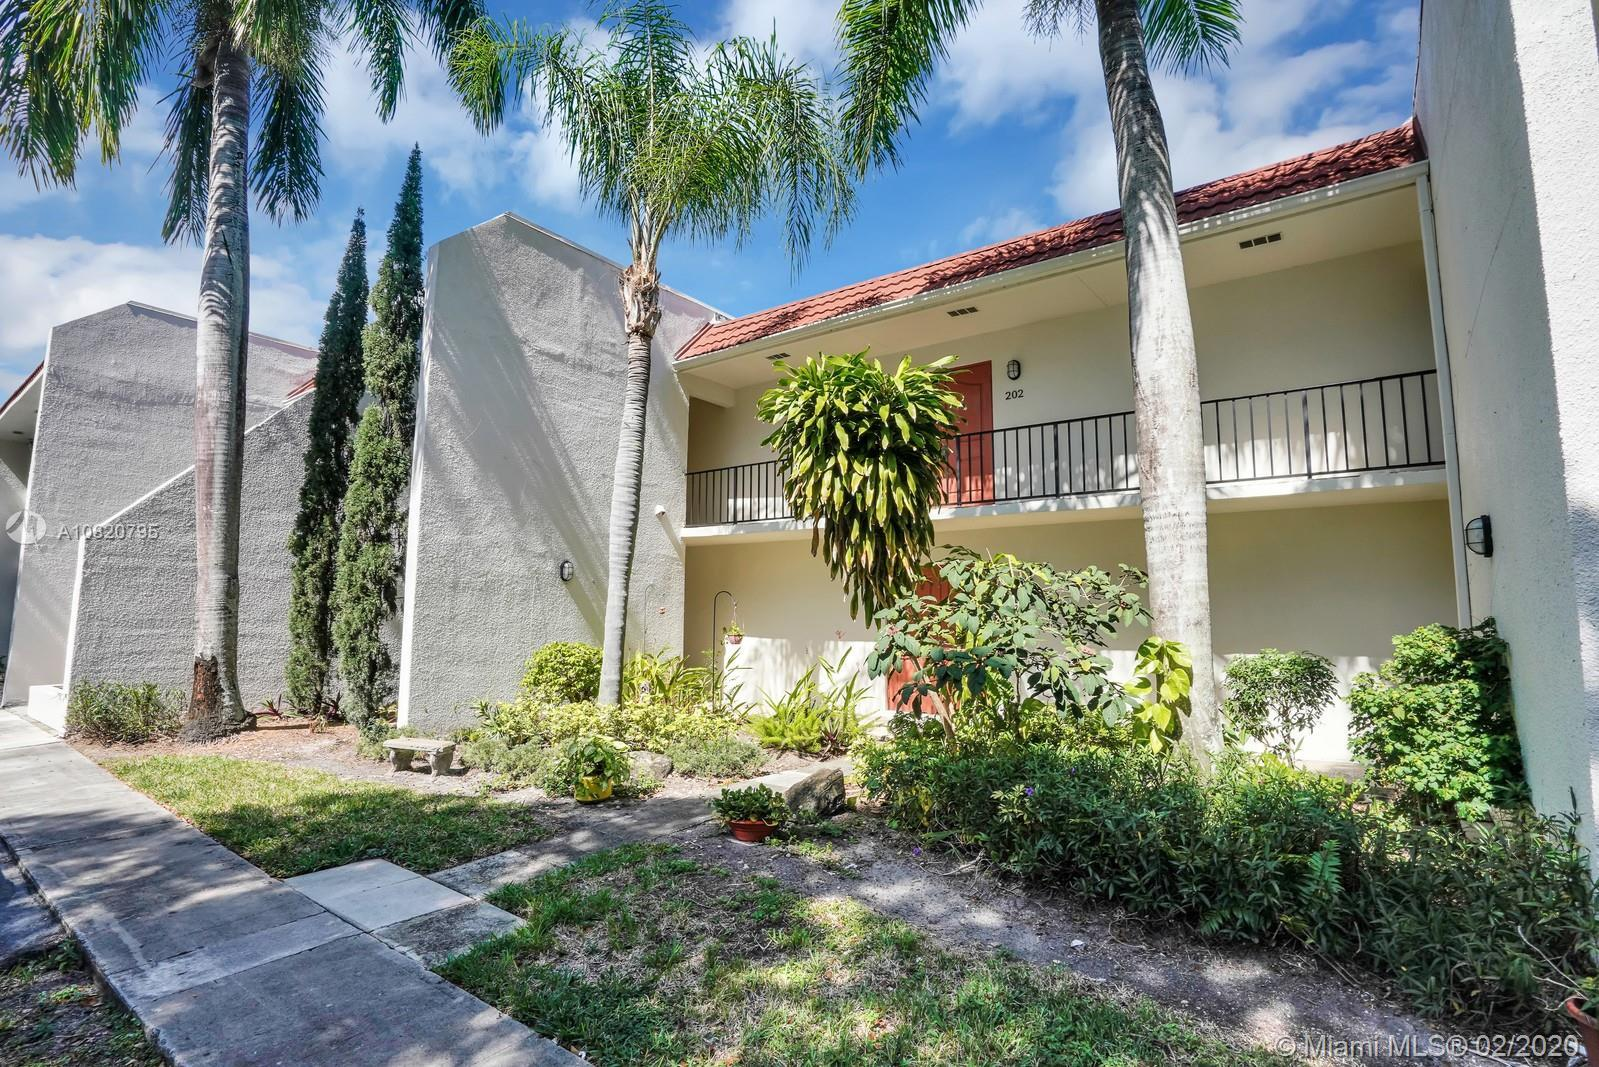 LARGEST APT. IN 42 UNIT COMPLEX WITH 3 BR/2.5 BA. HURRICANE PROOF WINDOWS WITH GREAT LIGHT AND BRIGH